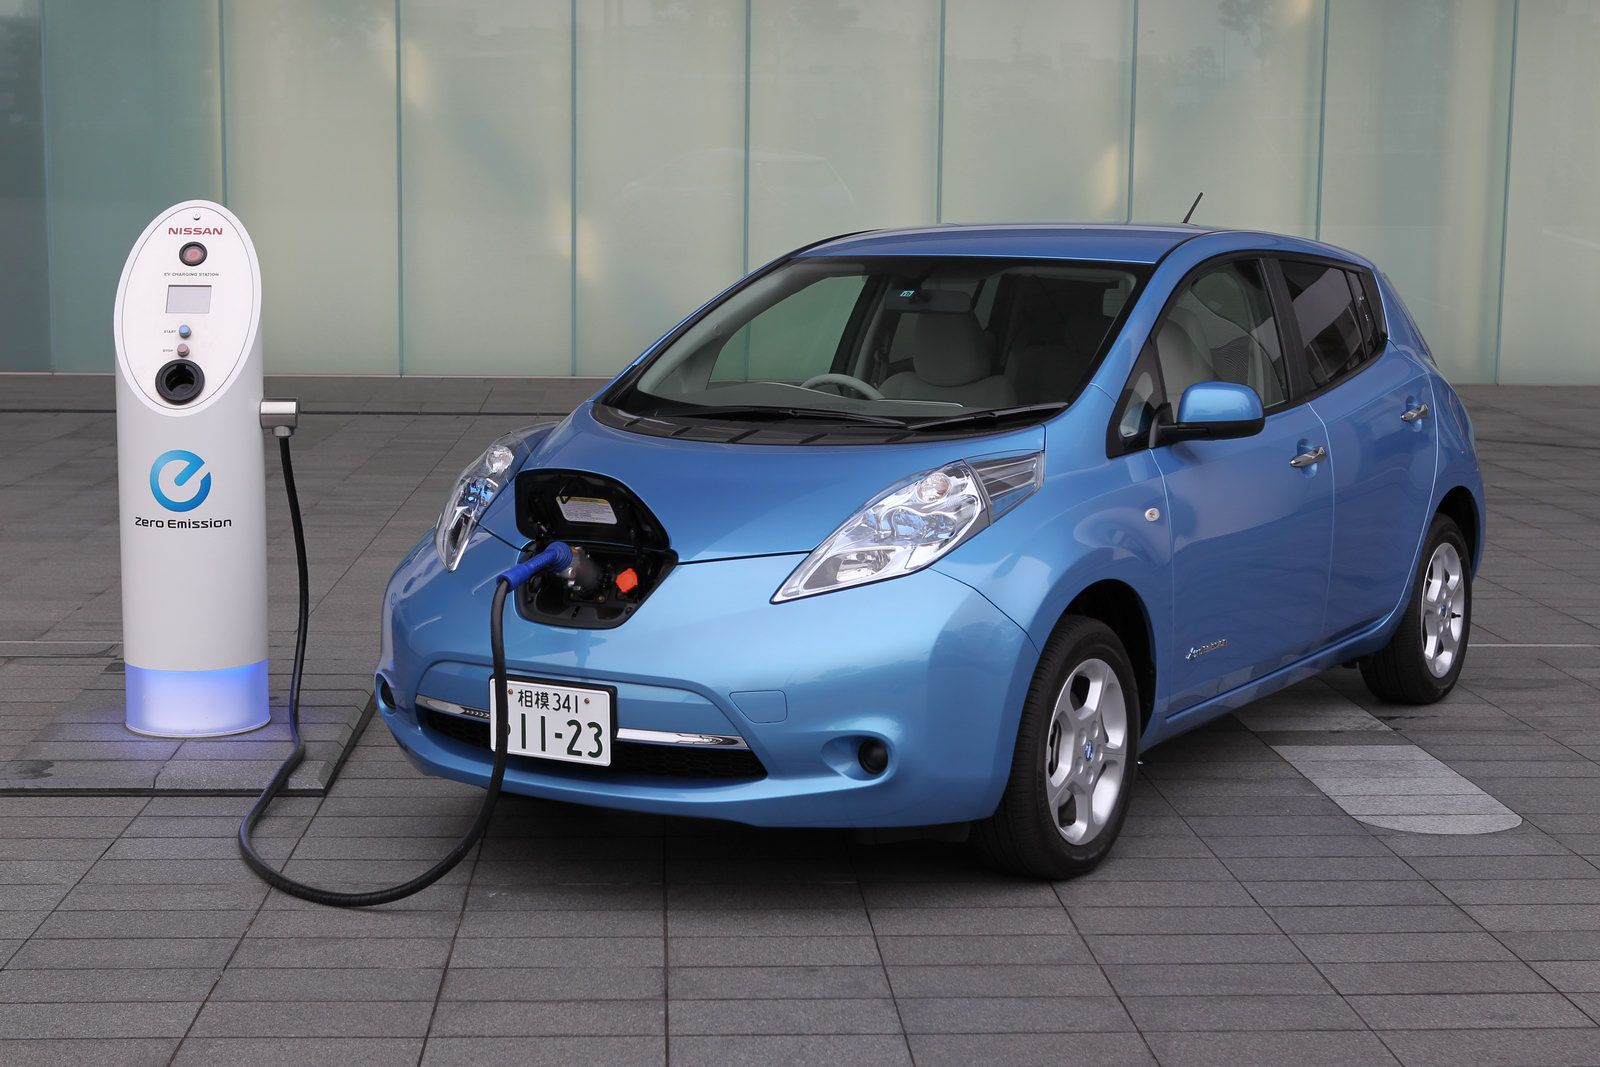 We leased a nissan leaf the leaf has a range of 100 miles and can get us around richmond pretty well however the only places we know of to plug